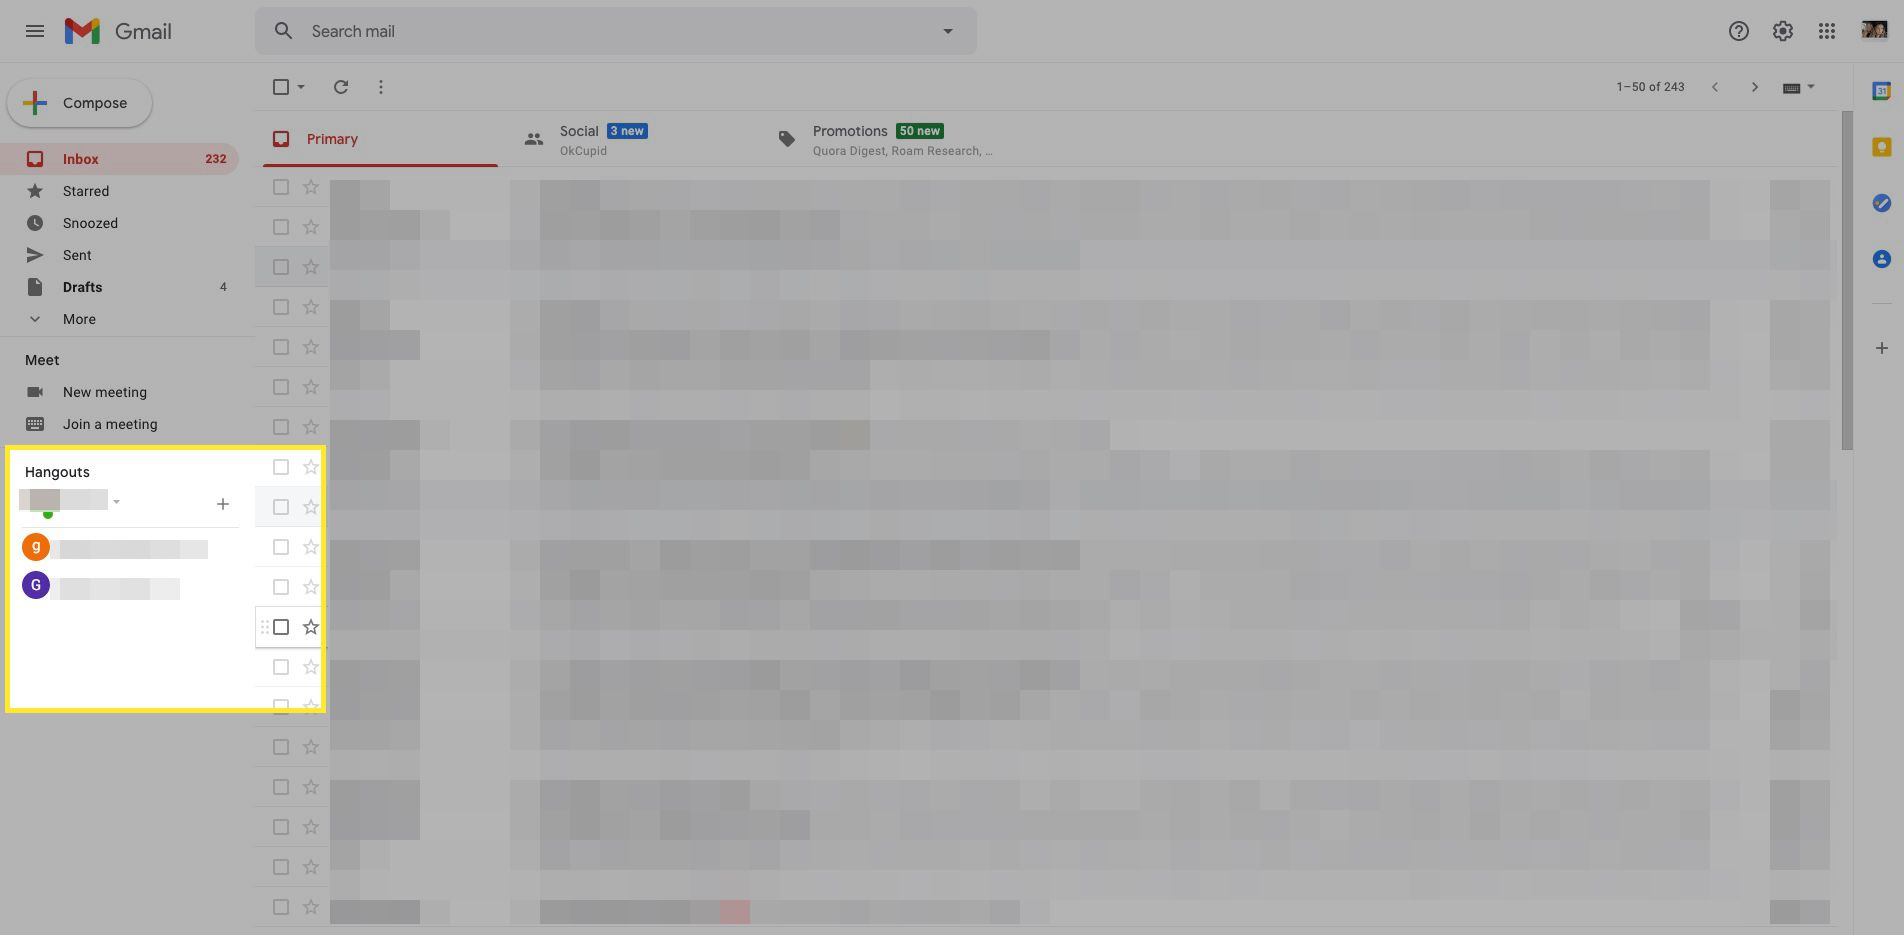 Gmail inbox screen with Hangouts section highlighted